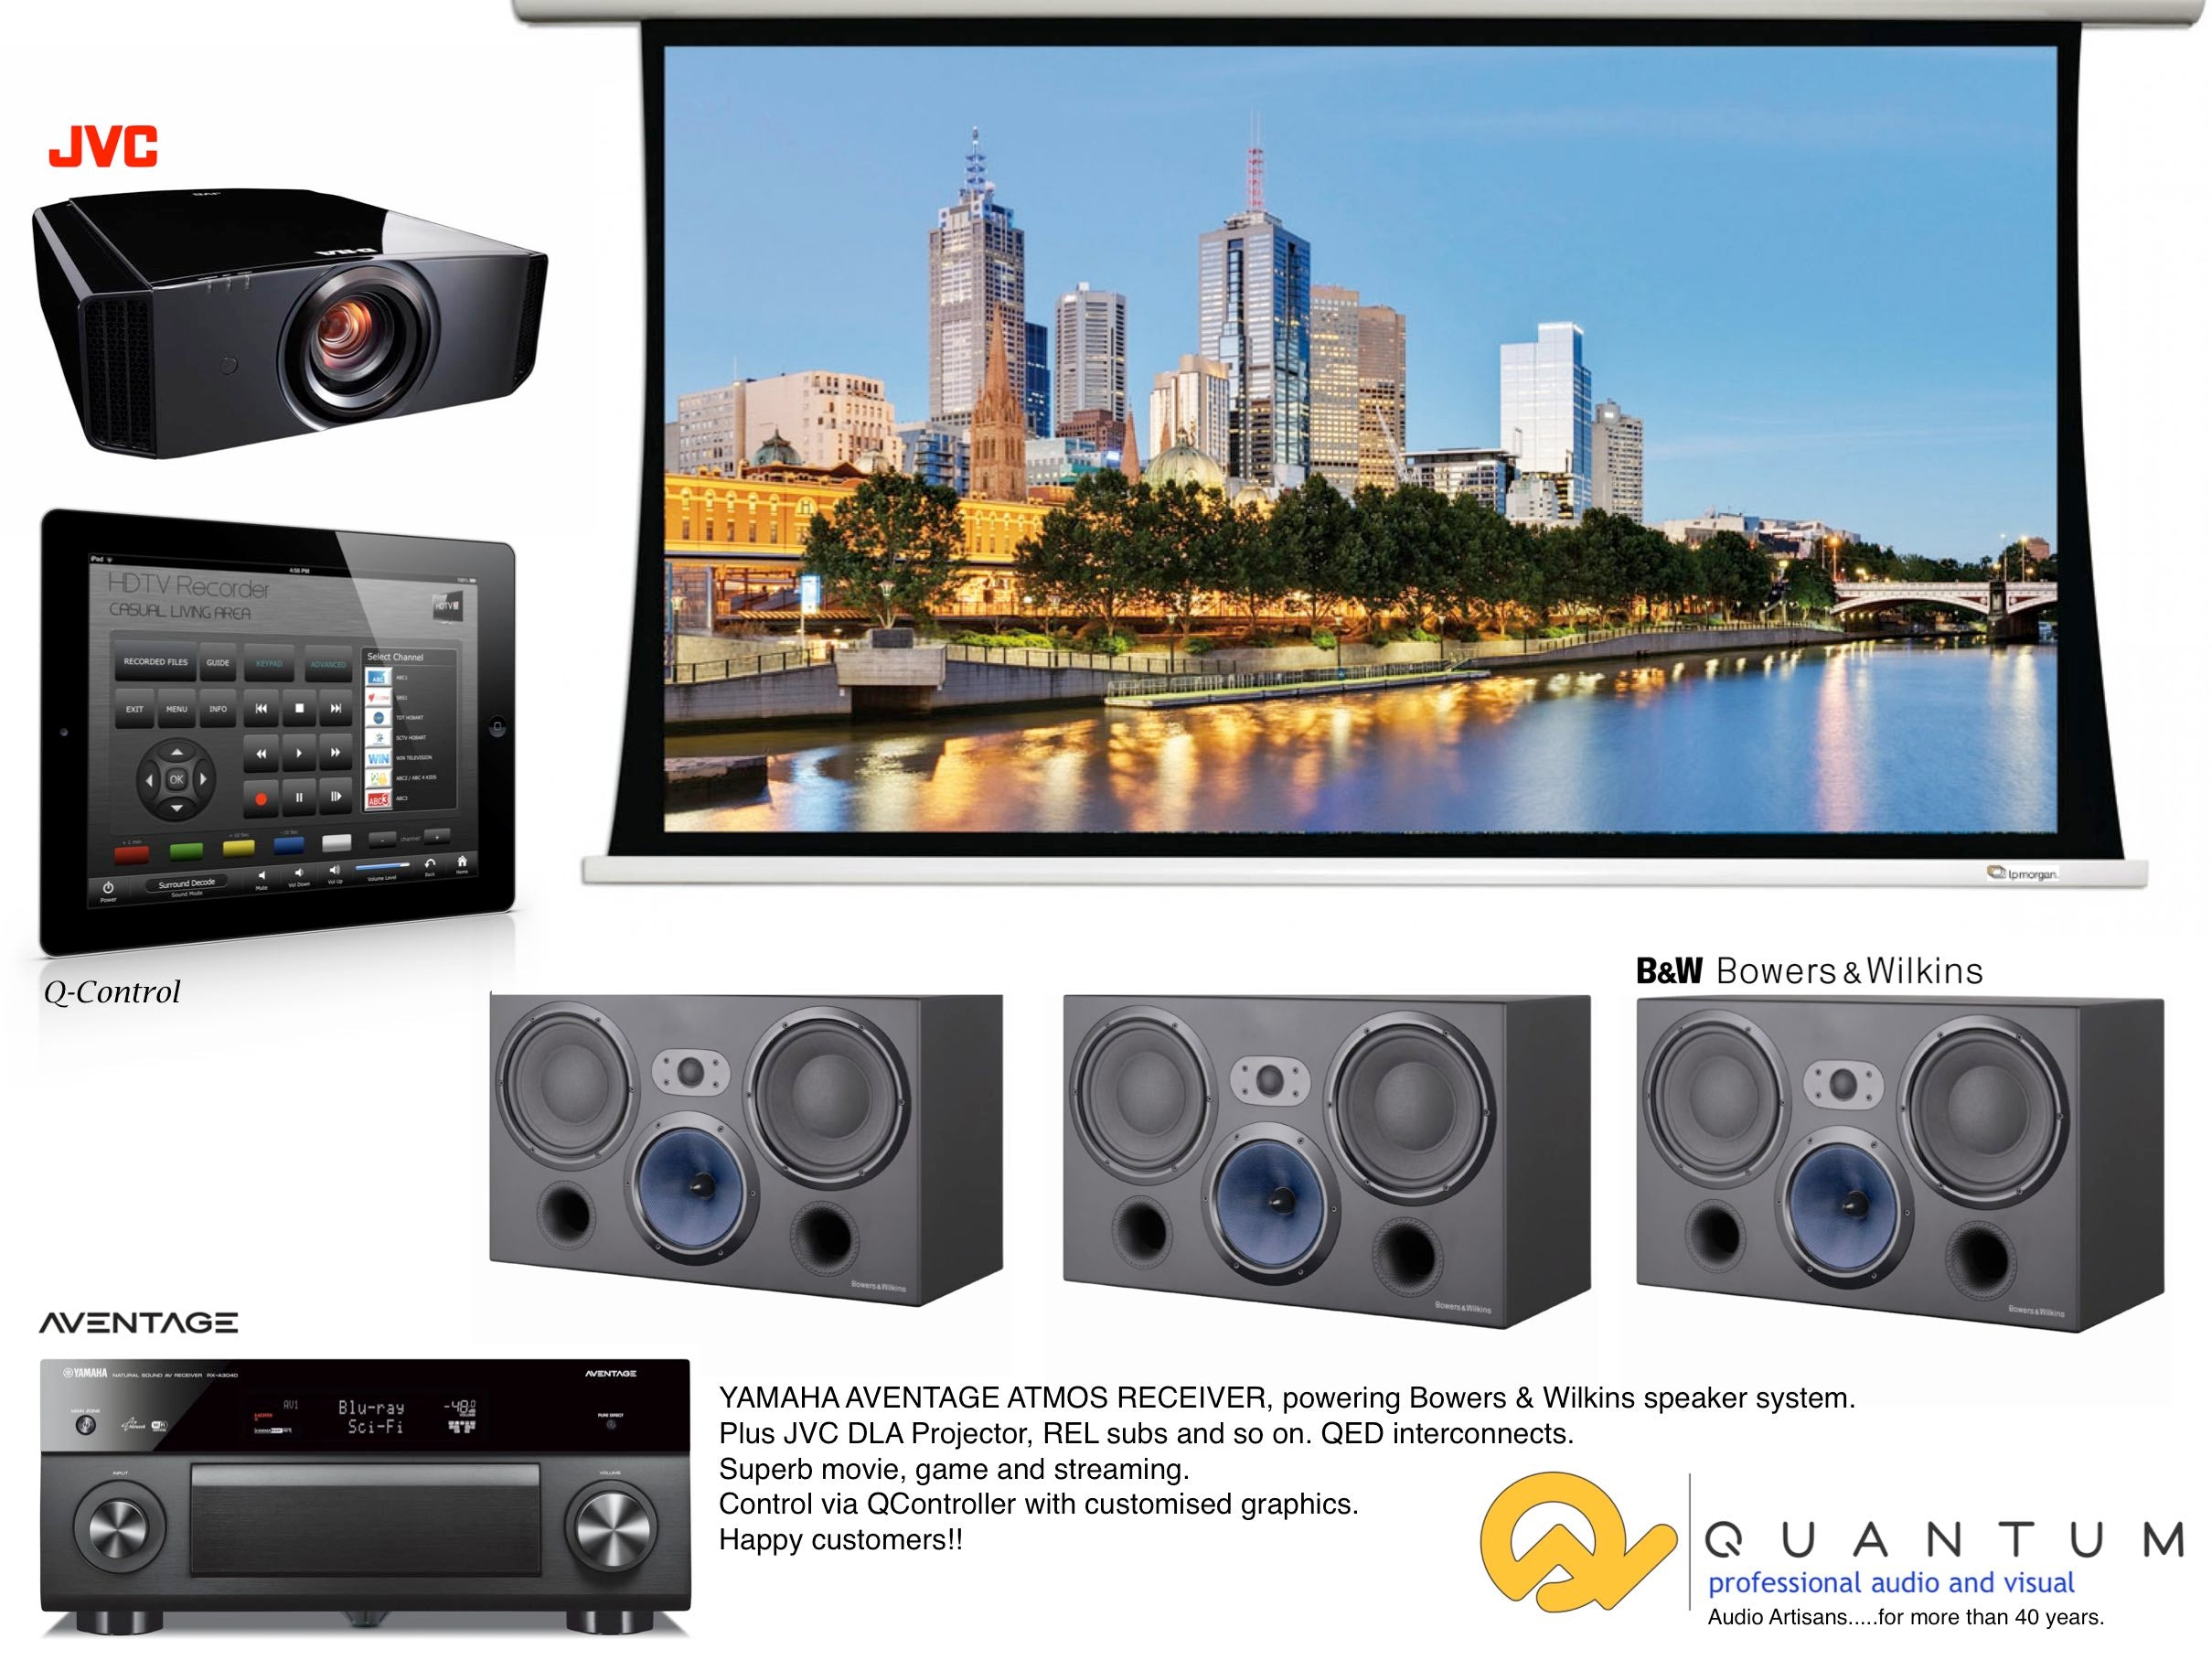 Vision Home Theatre Audio Quantum And Visual Lifestyle Wiring A Theater Projection Tv With More Than 40 Years Supplying Installing Products We Enjoy Advising You Your Partner Or Family As To Which Components